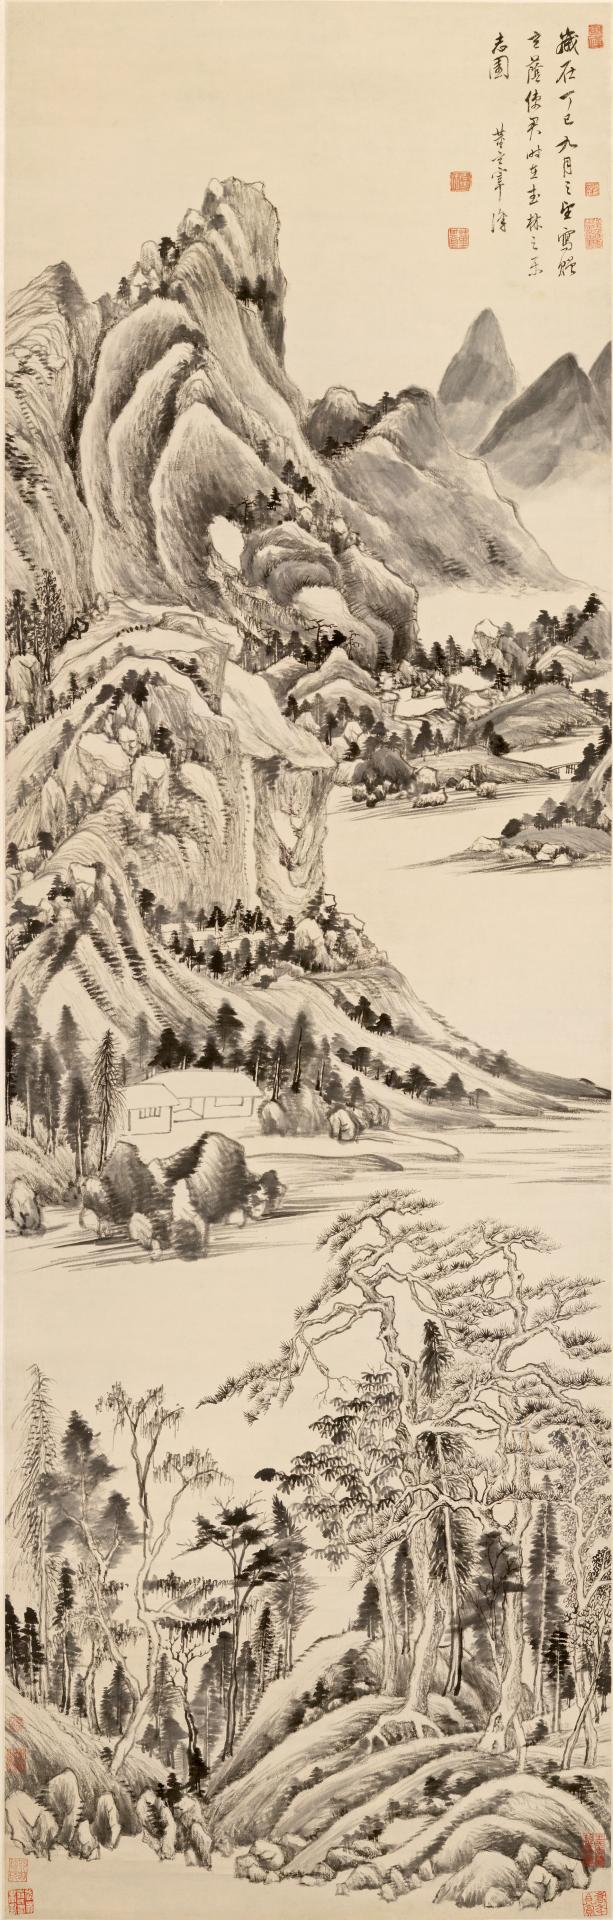 DONG Qichang Mountain landscape 1617